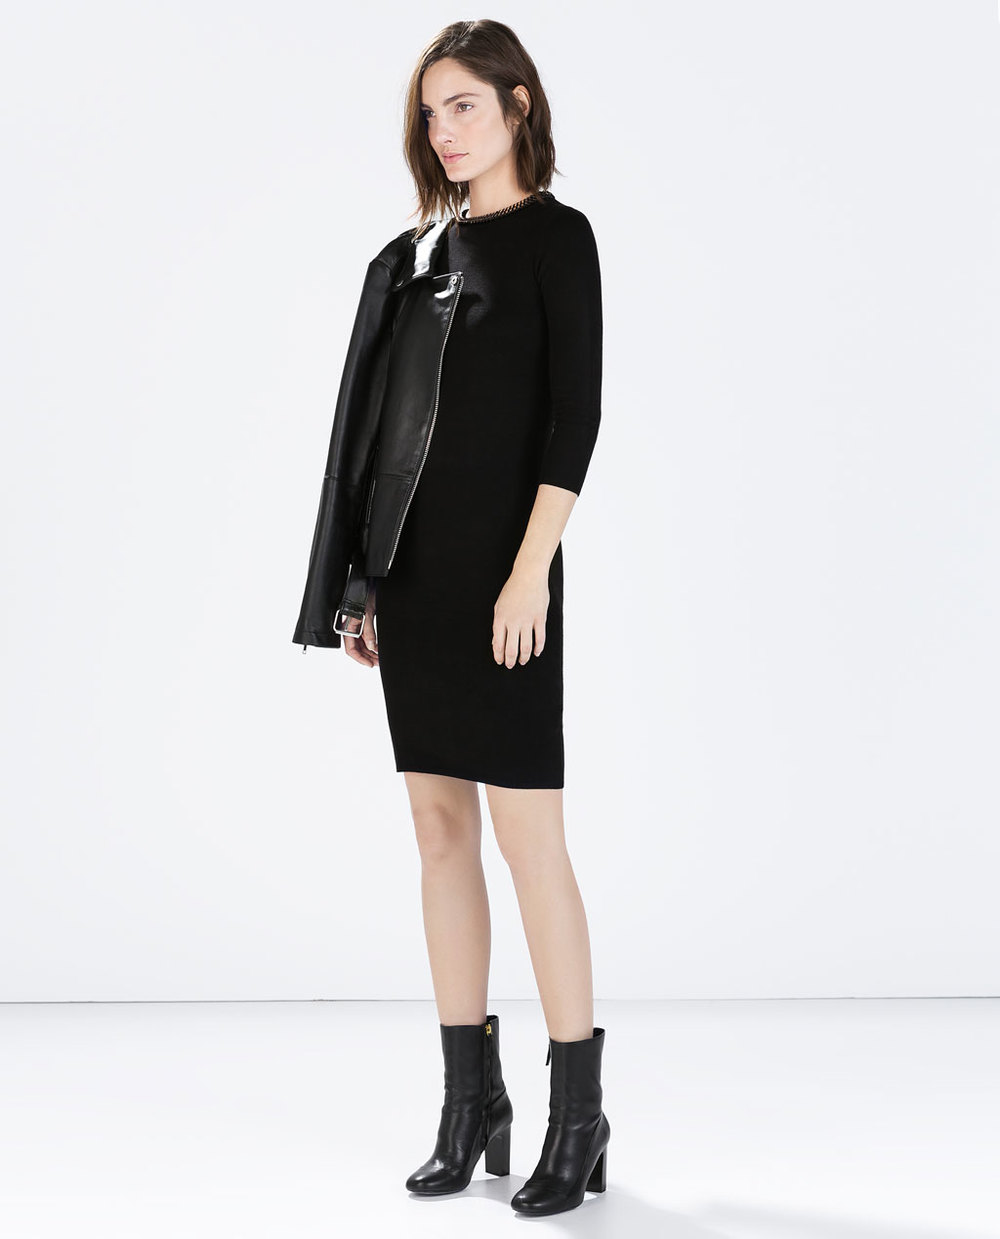 Dress with detail on the collar. Zara. $59.90.